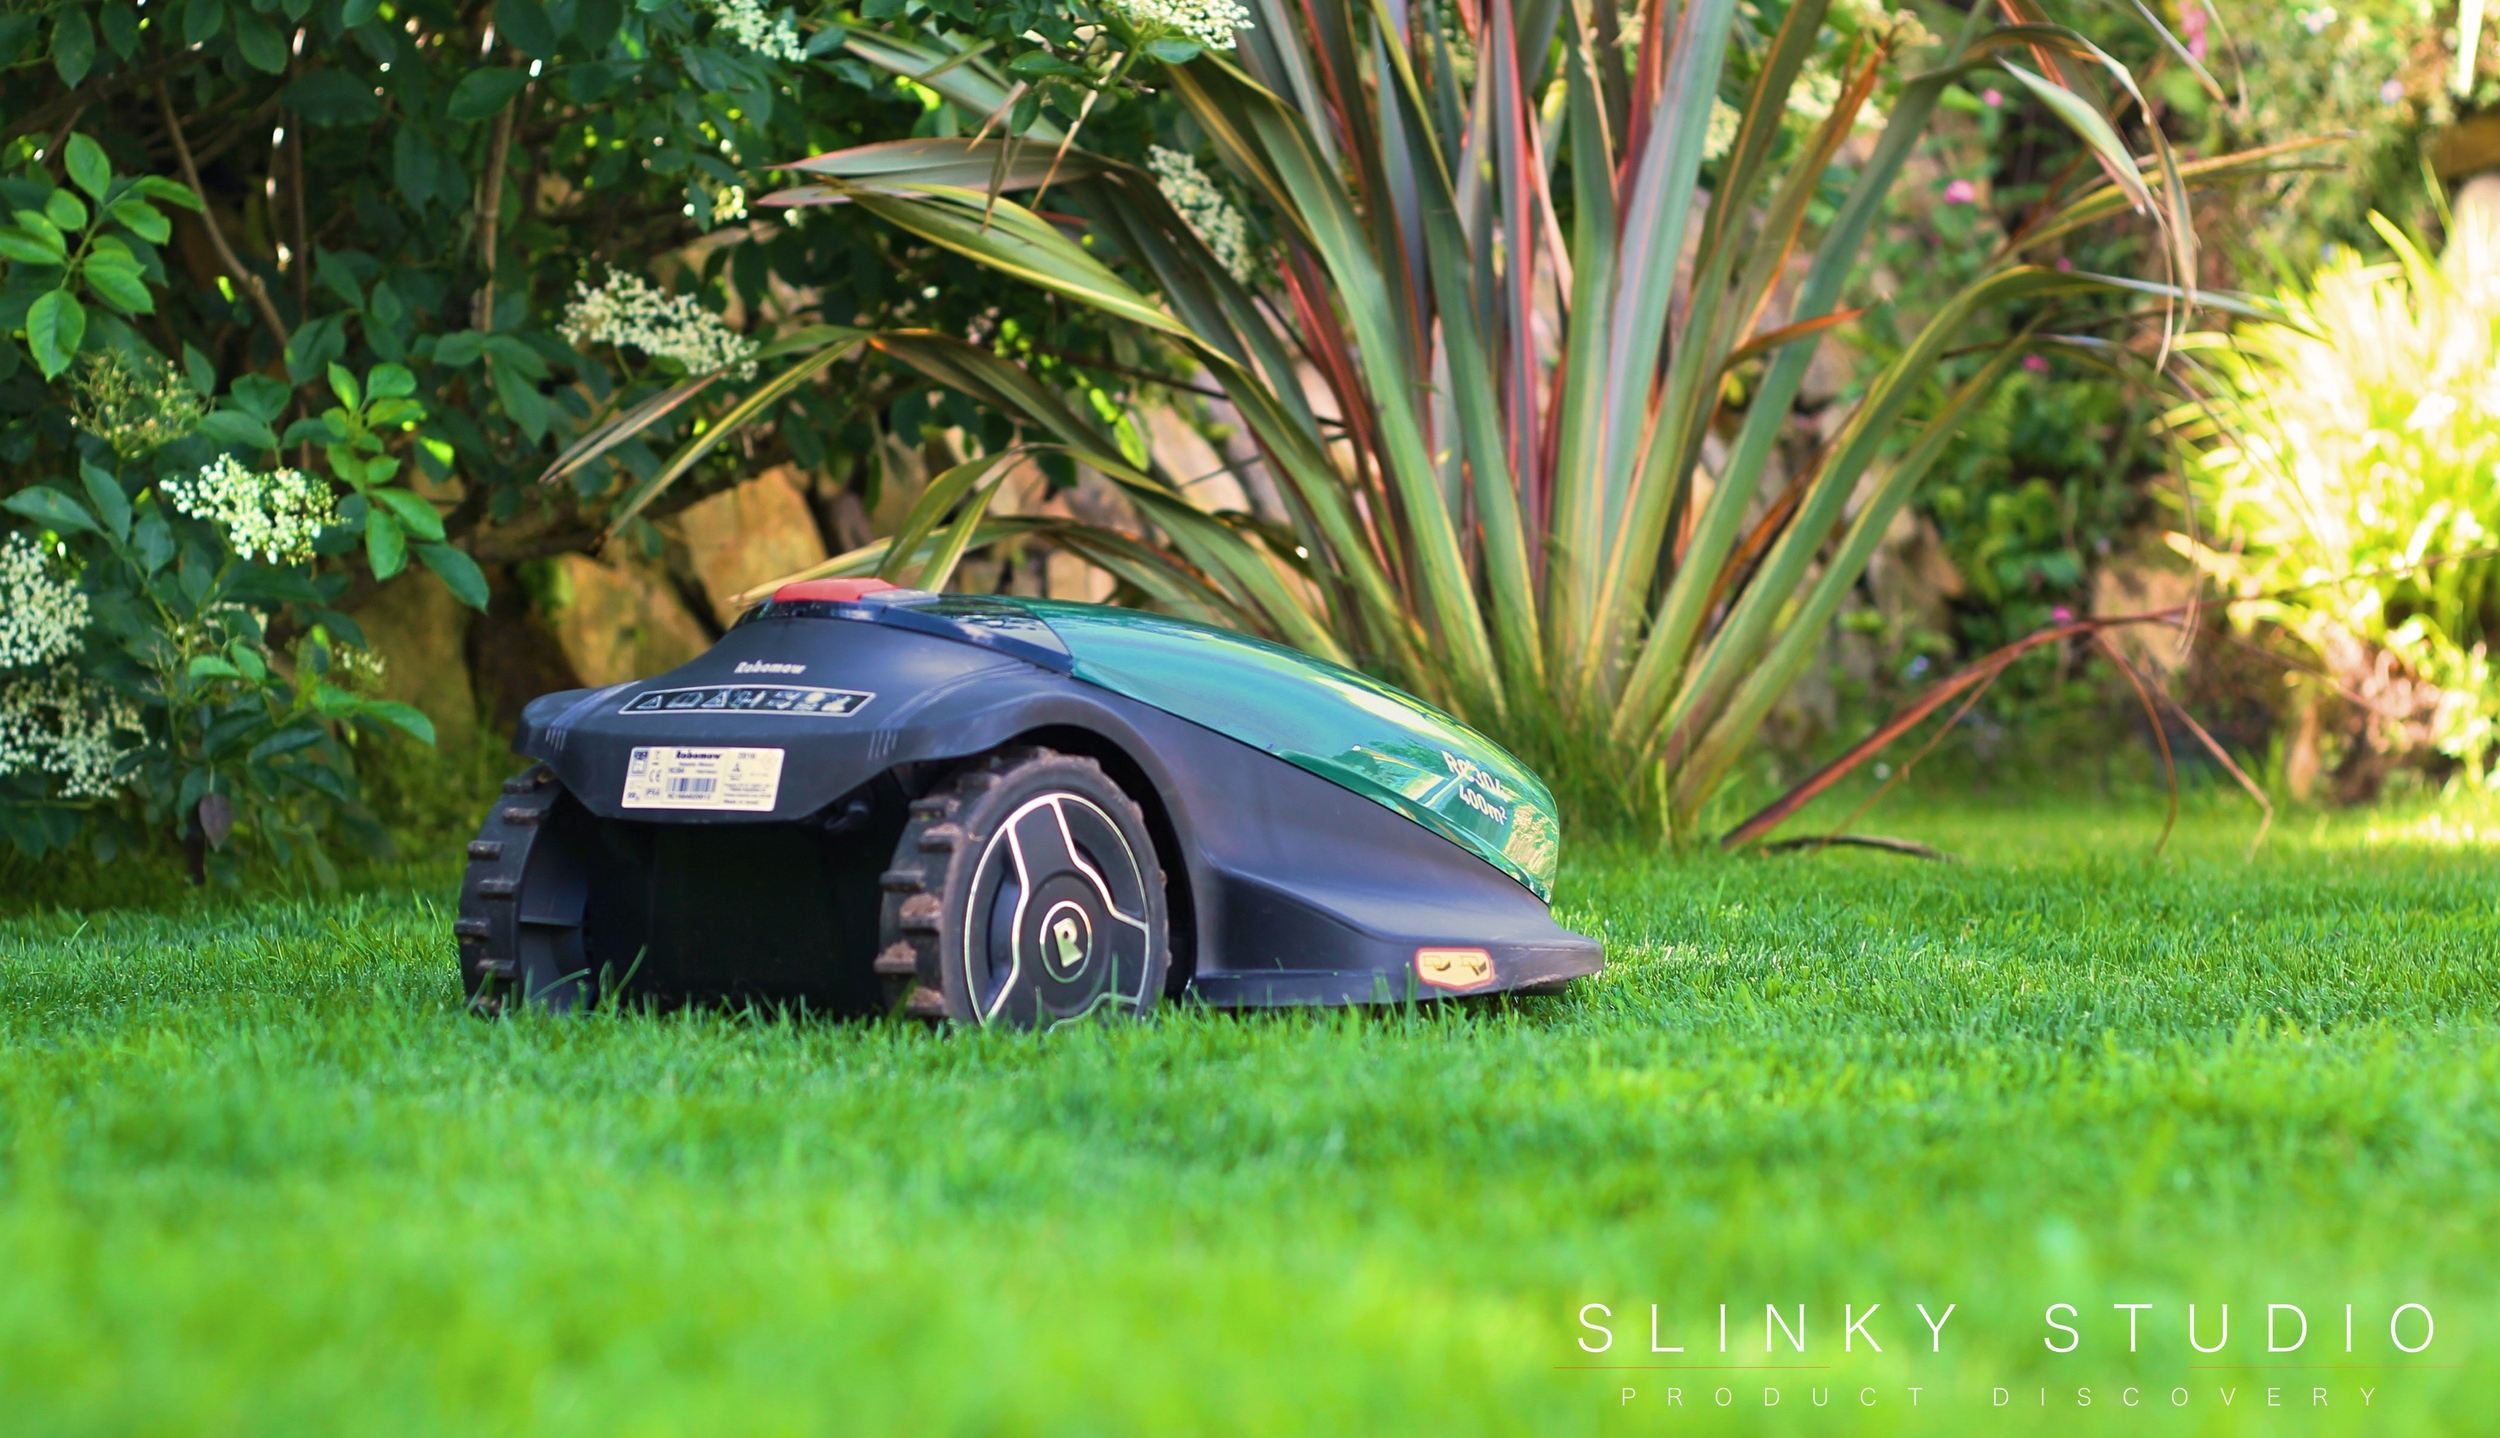 Robomow RC304 Robot Lawnmower Mowing Lawn.jpg